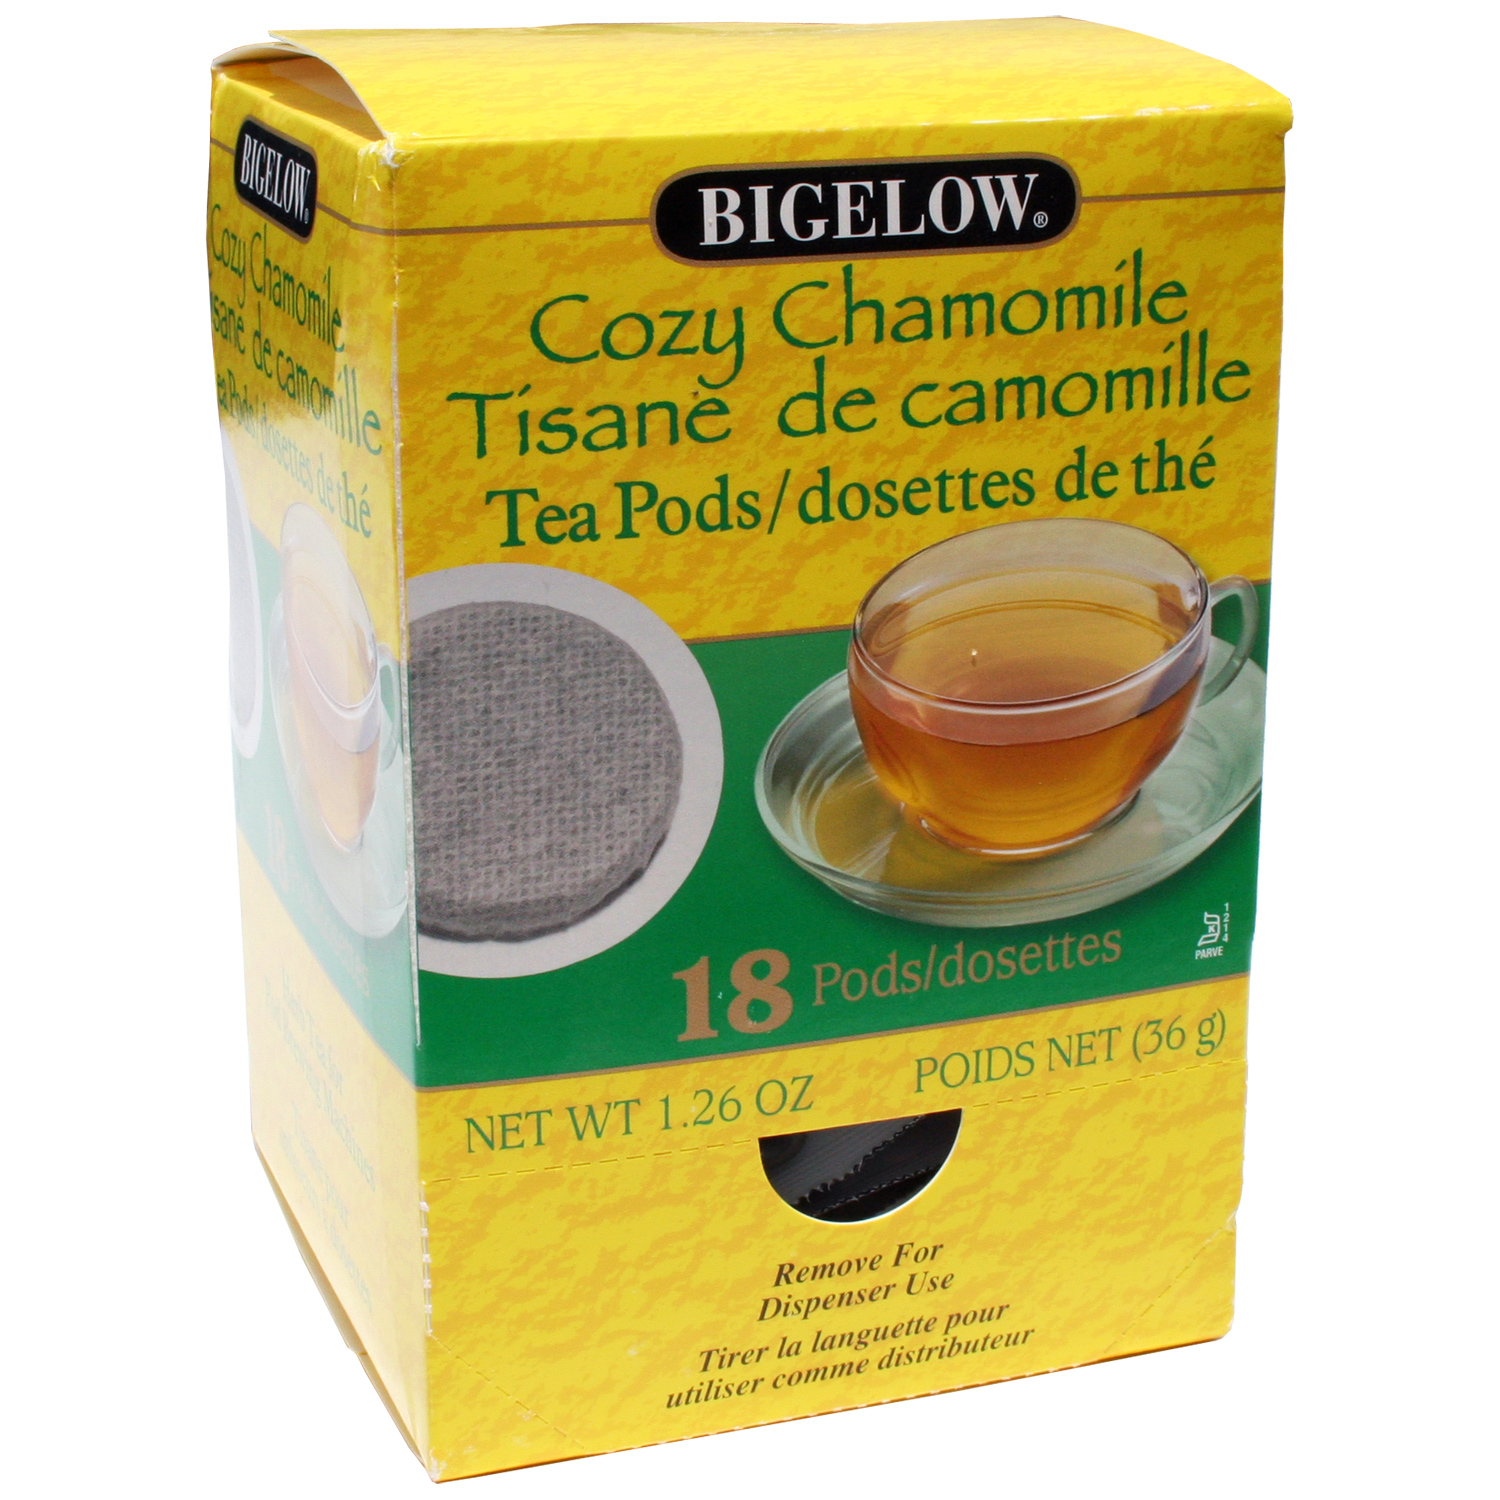 Bigelow Cozy Chamomile Tea Pods 18ct